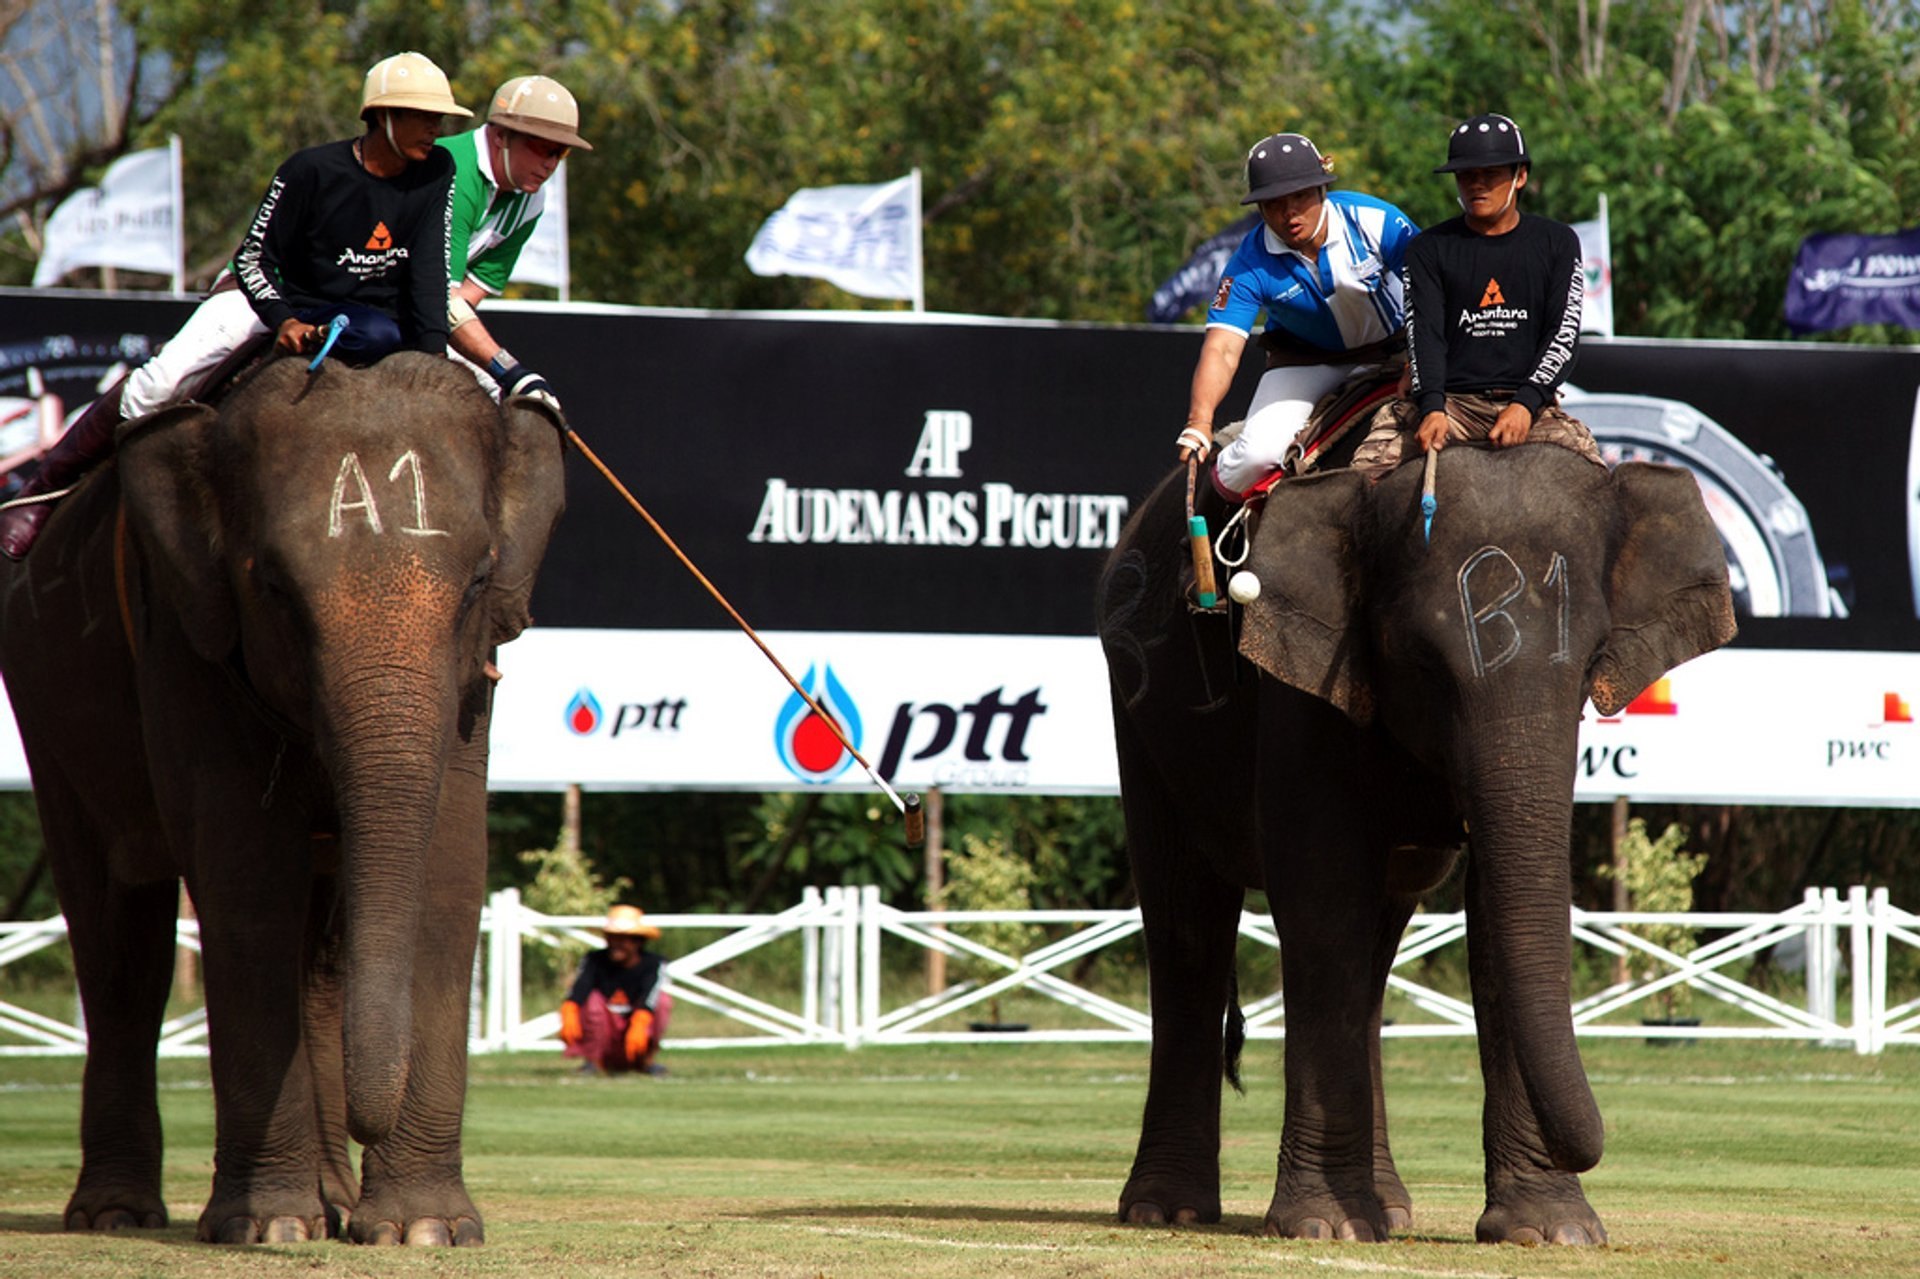 King's Cup Elephant Polo in Thailand - Best Season 2019